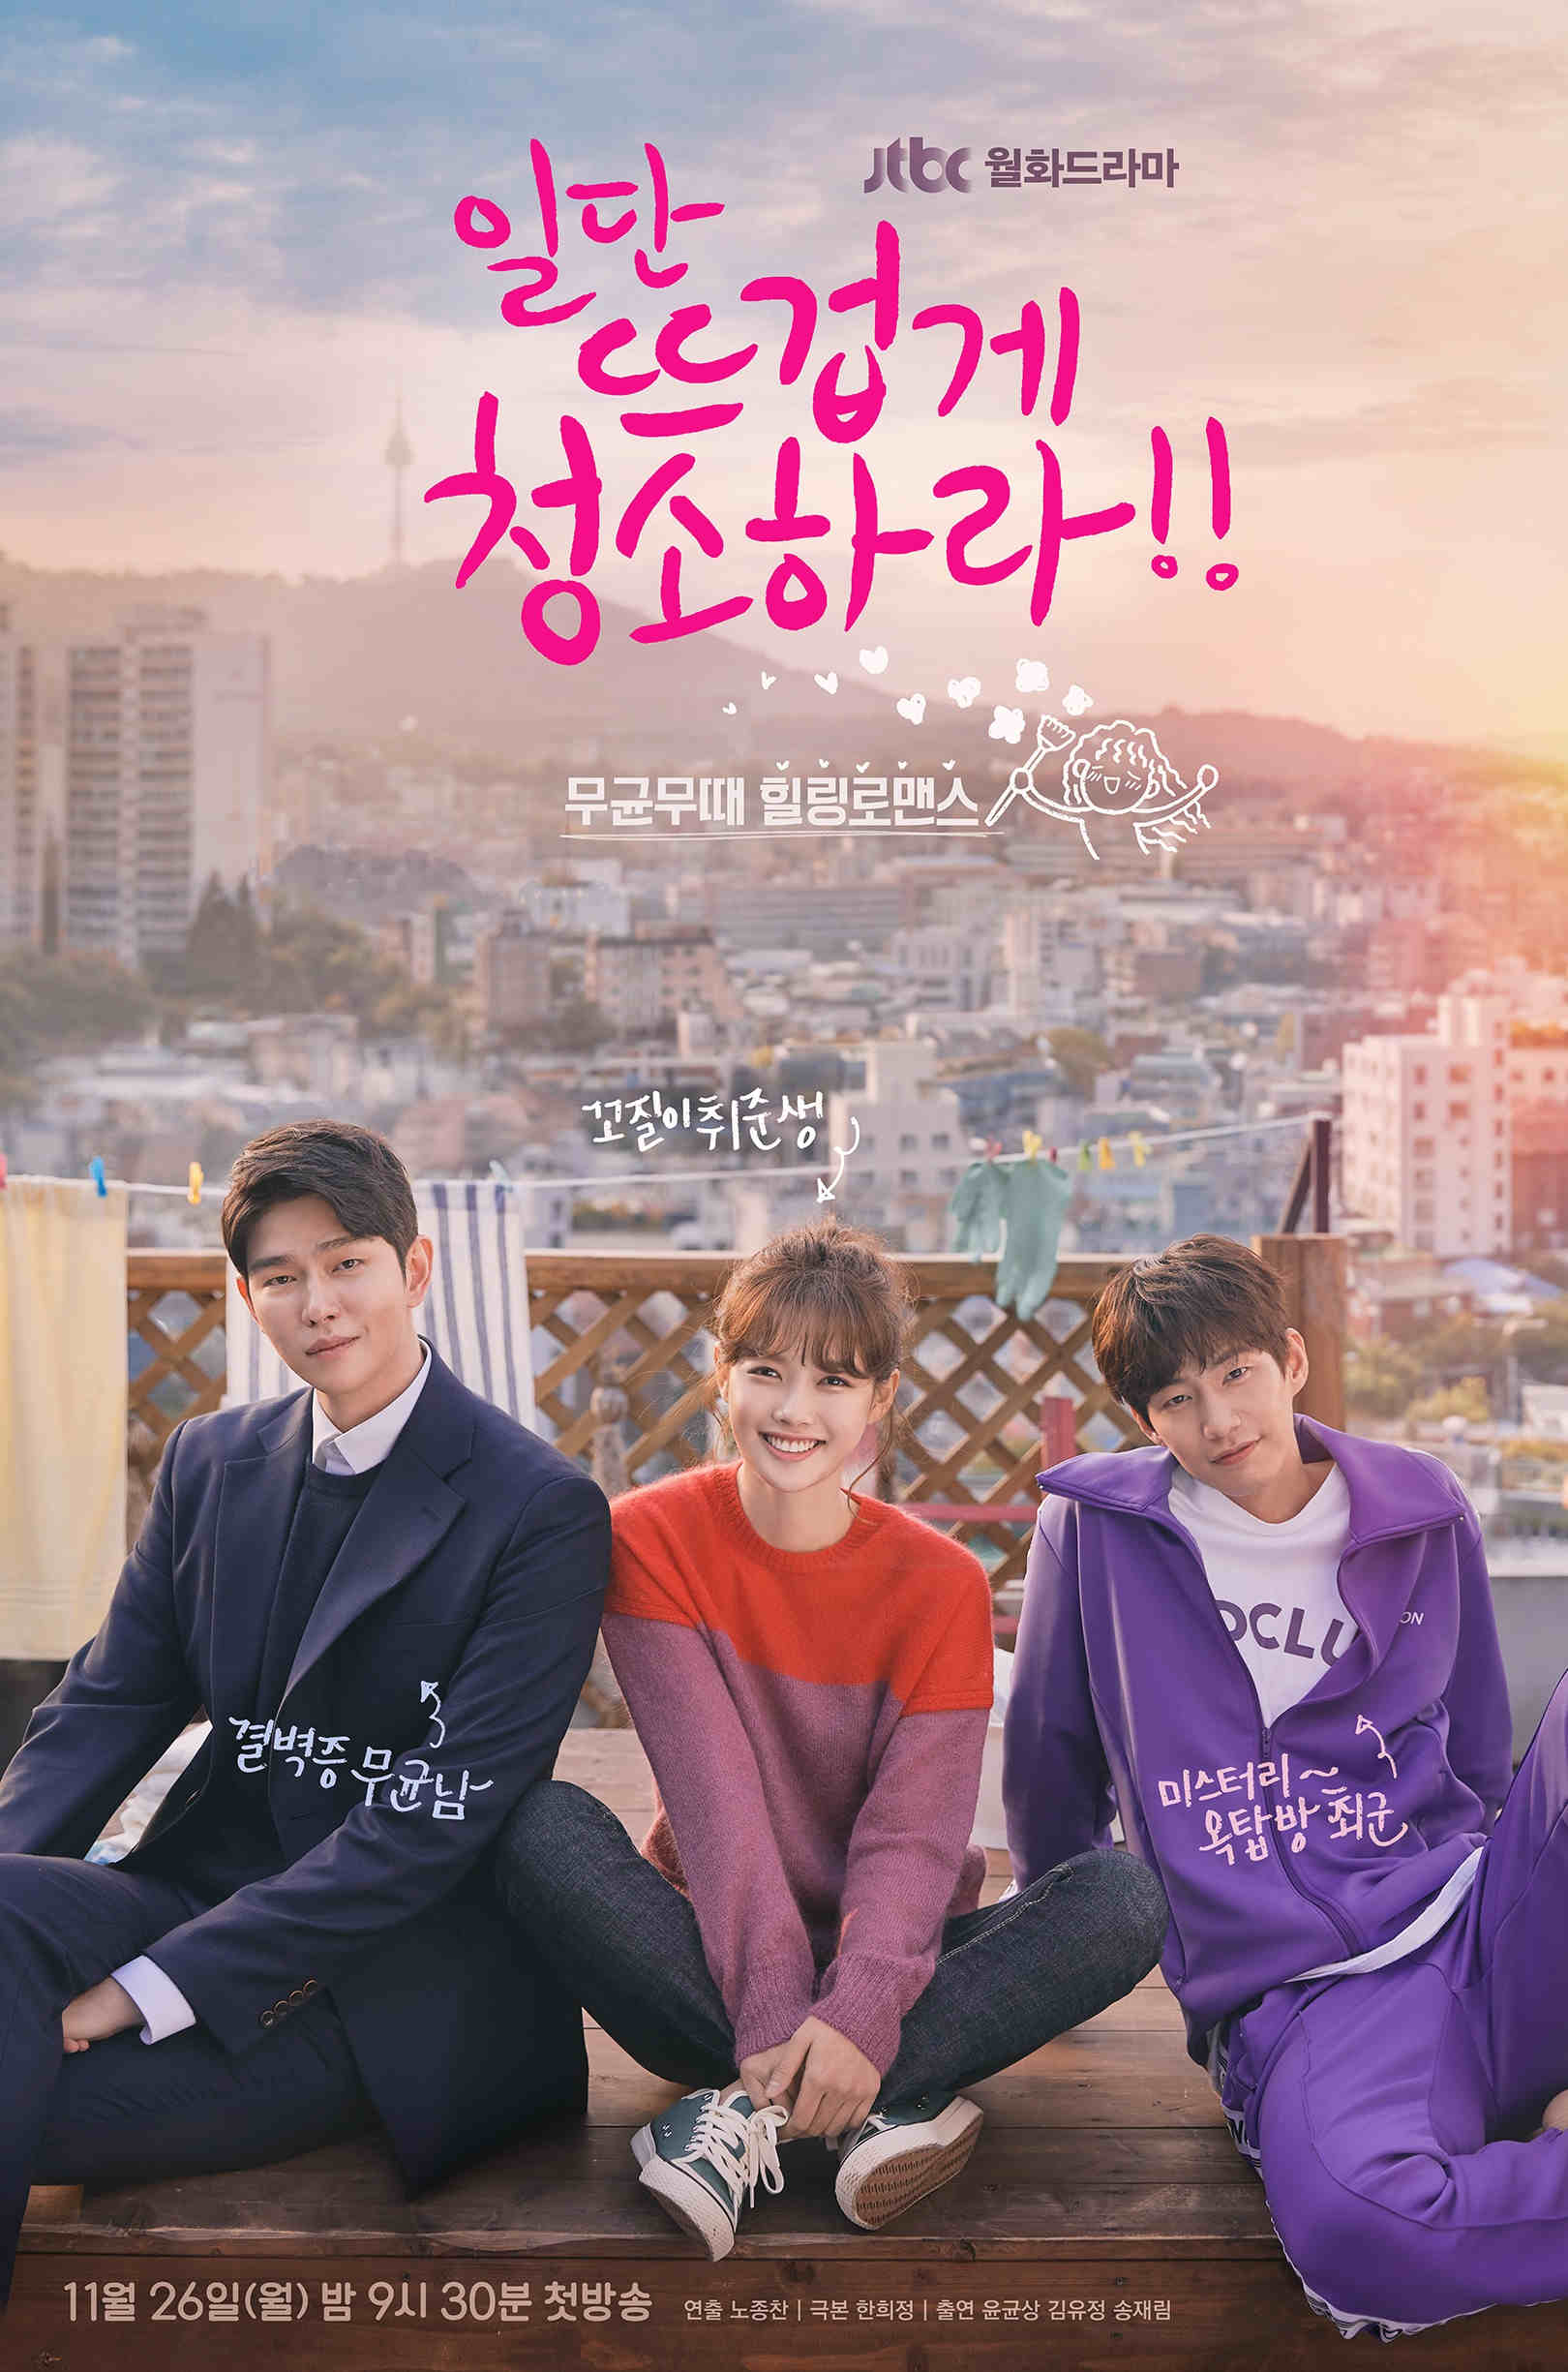 Mental Health Korean Dramas - Clean with Passion for Now